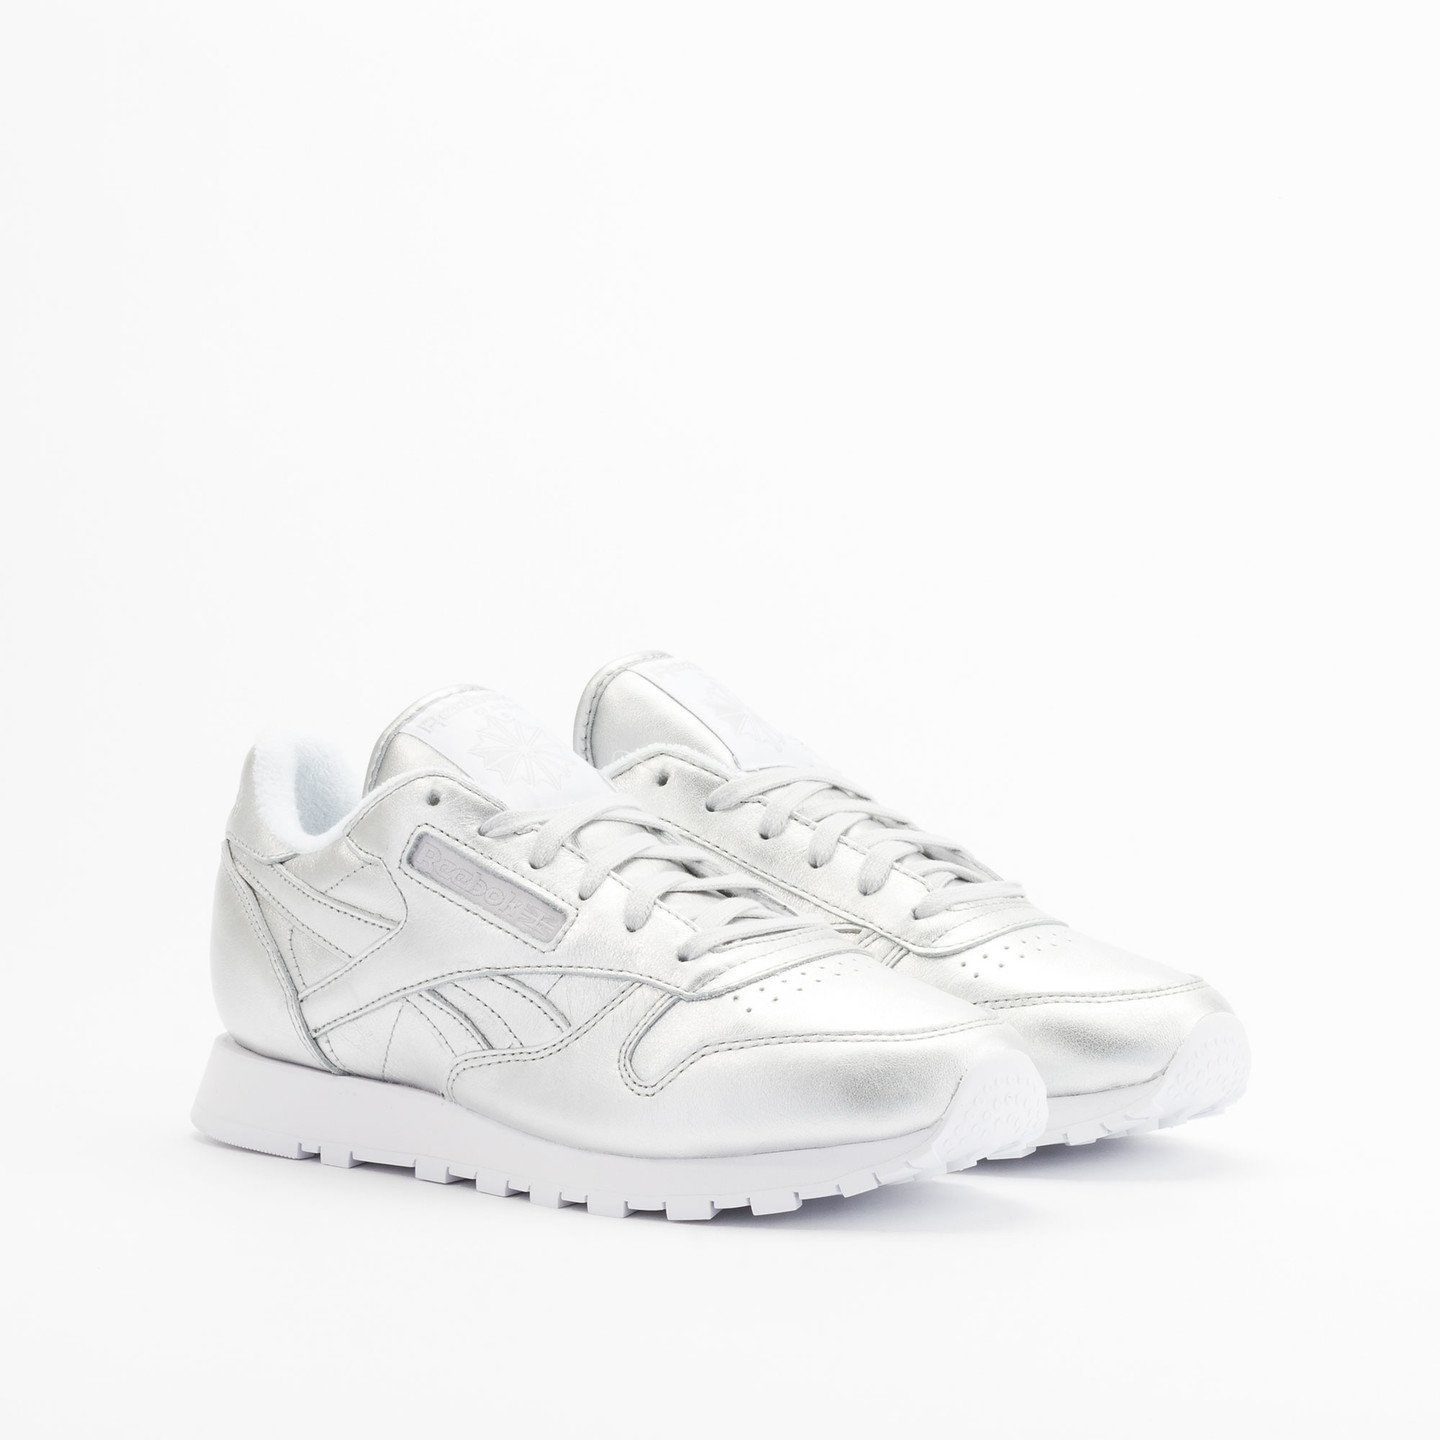 Reebok Classic Leather Spirit Presence Silver / White V62700-42